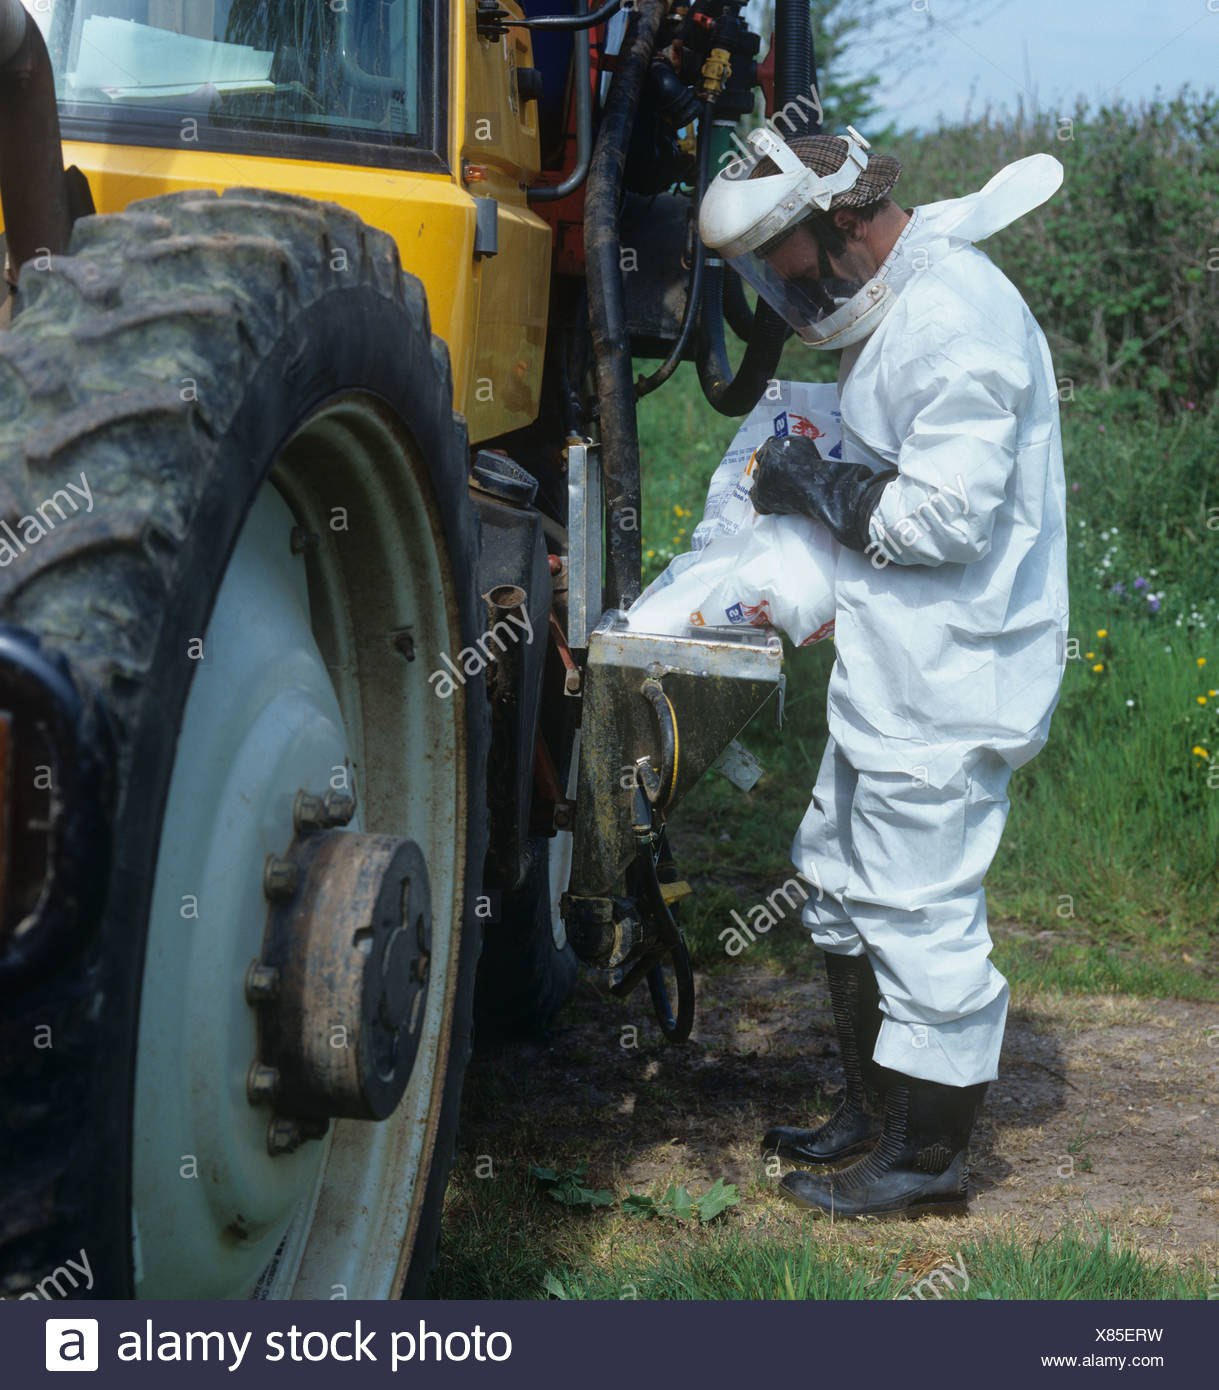 Worker wearing full protective gear filling tank on Gem 2000 sprayer mounted on Fastrac tractor - Stock Image